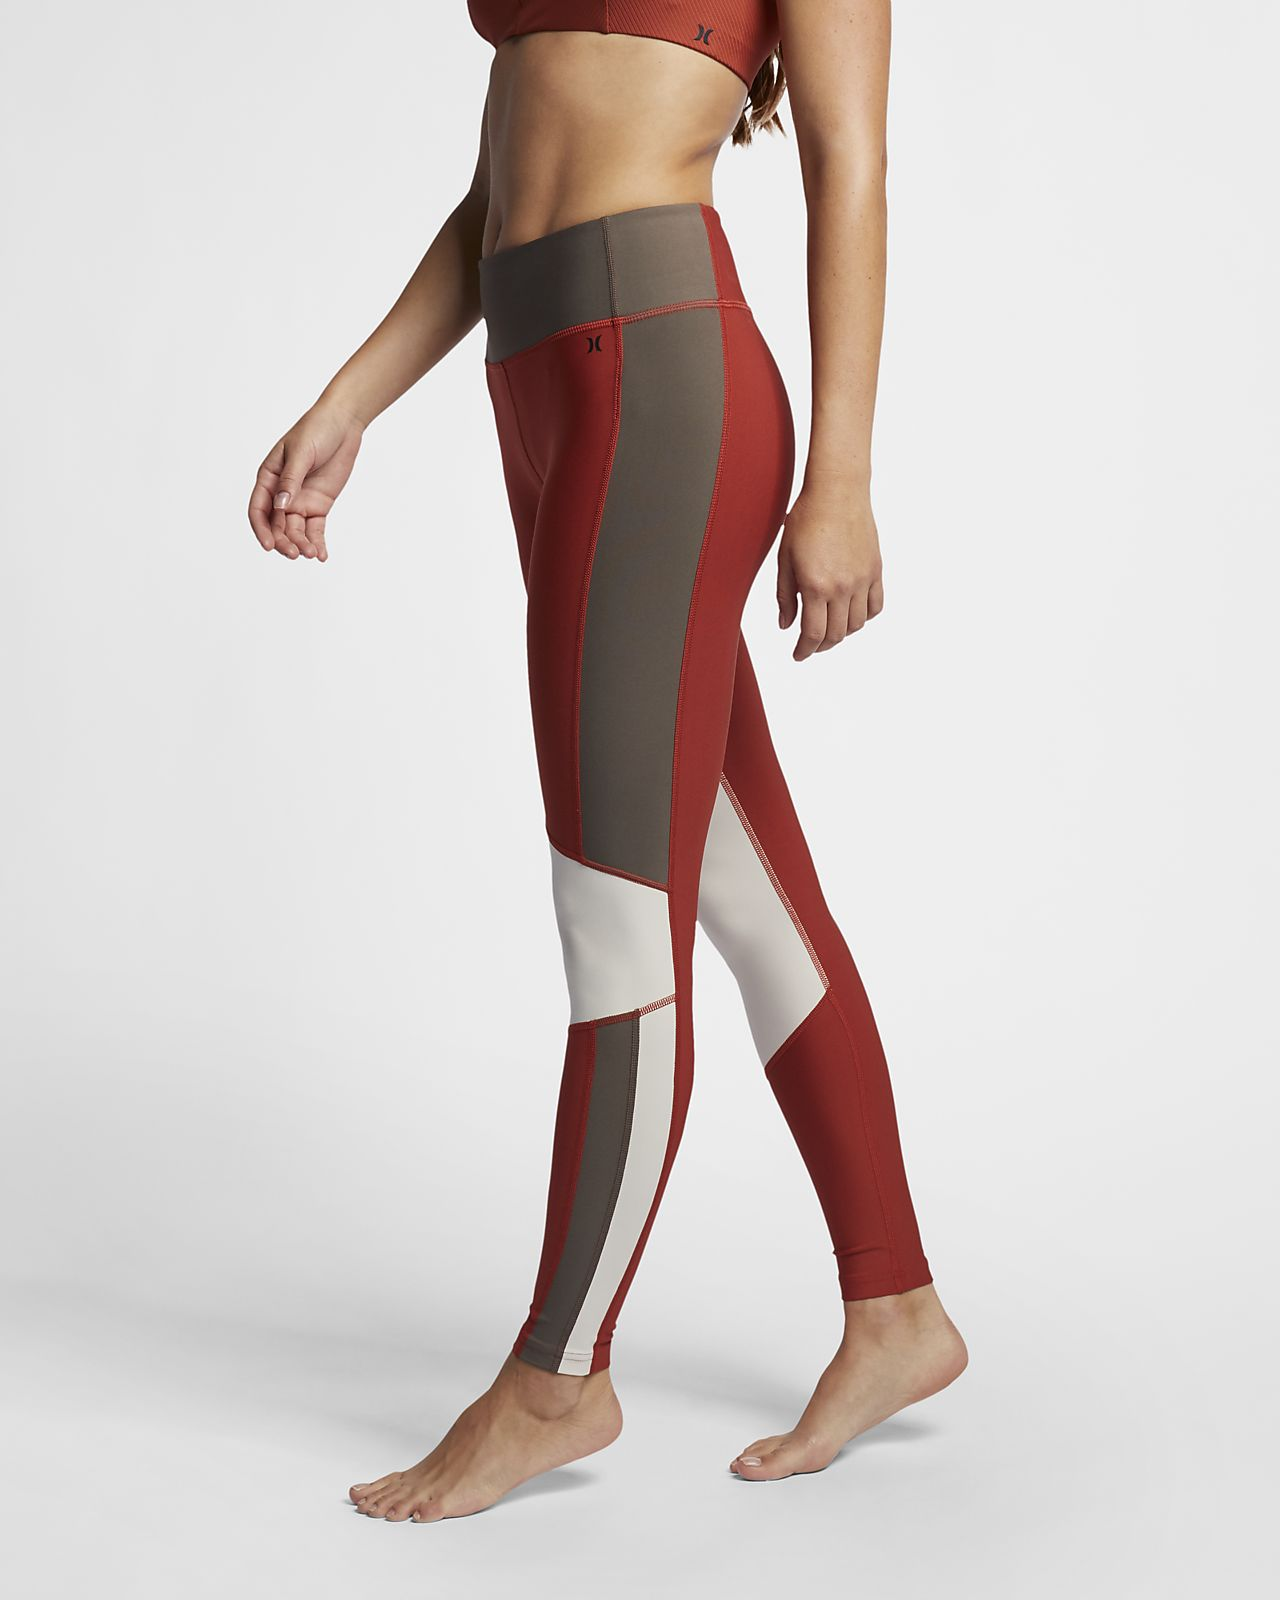 c9a832a3c0ea1 Hurley Quick Dry Street Ready Women's Surf Leggings. Nike.com GB